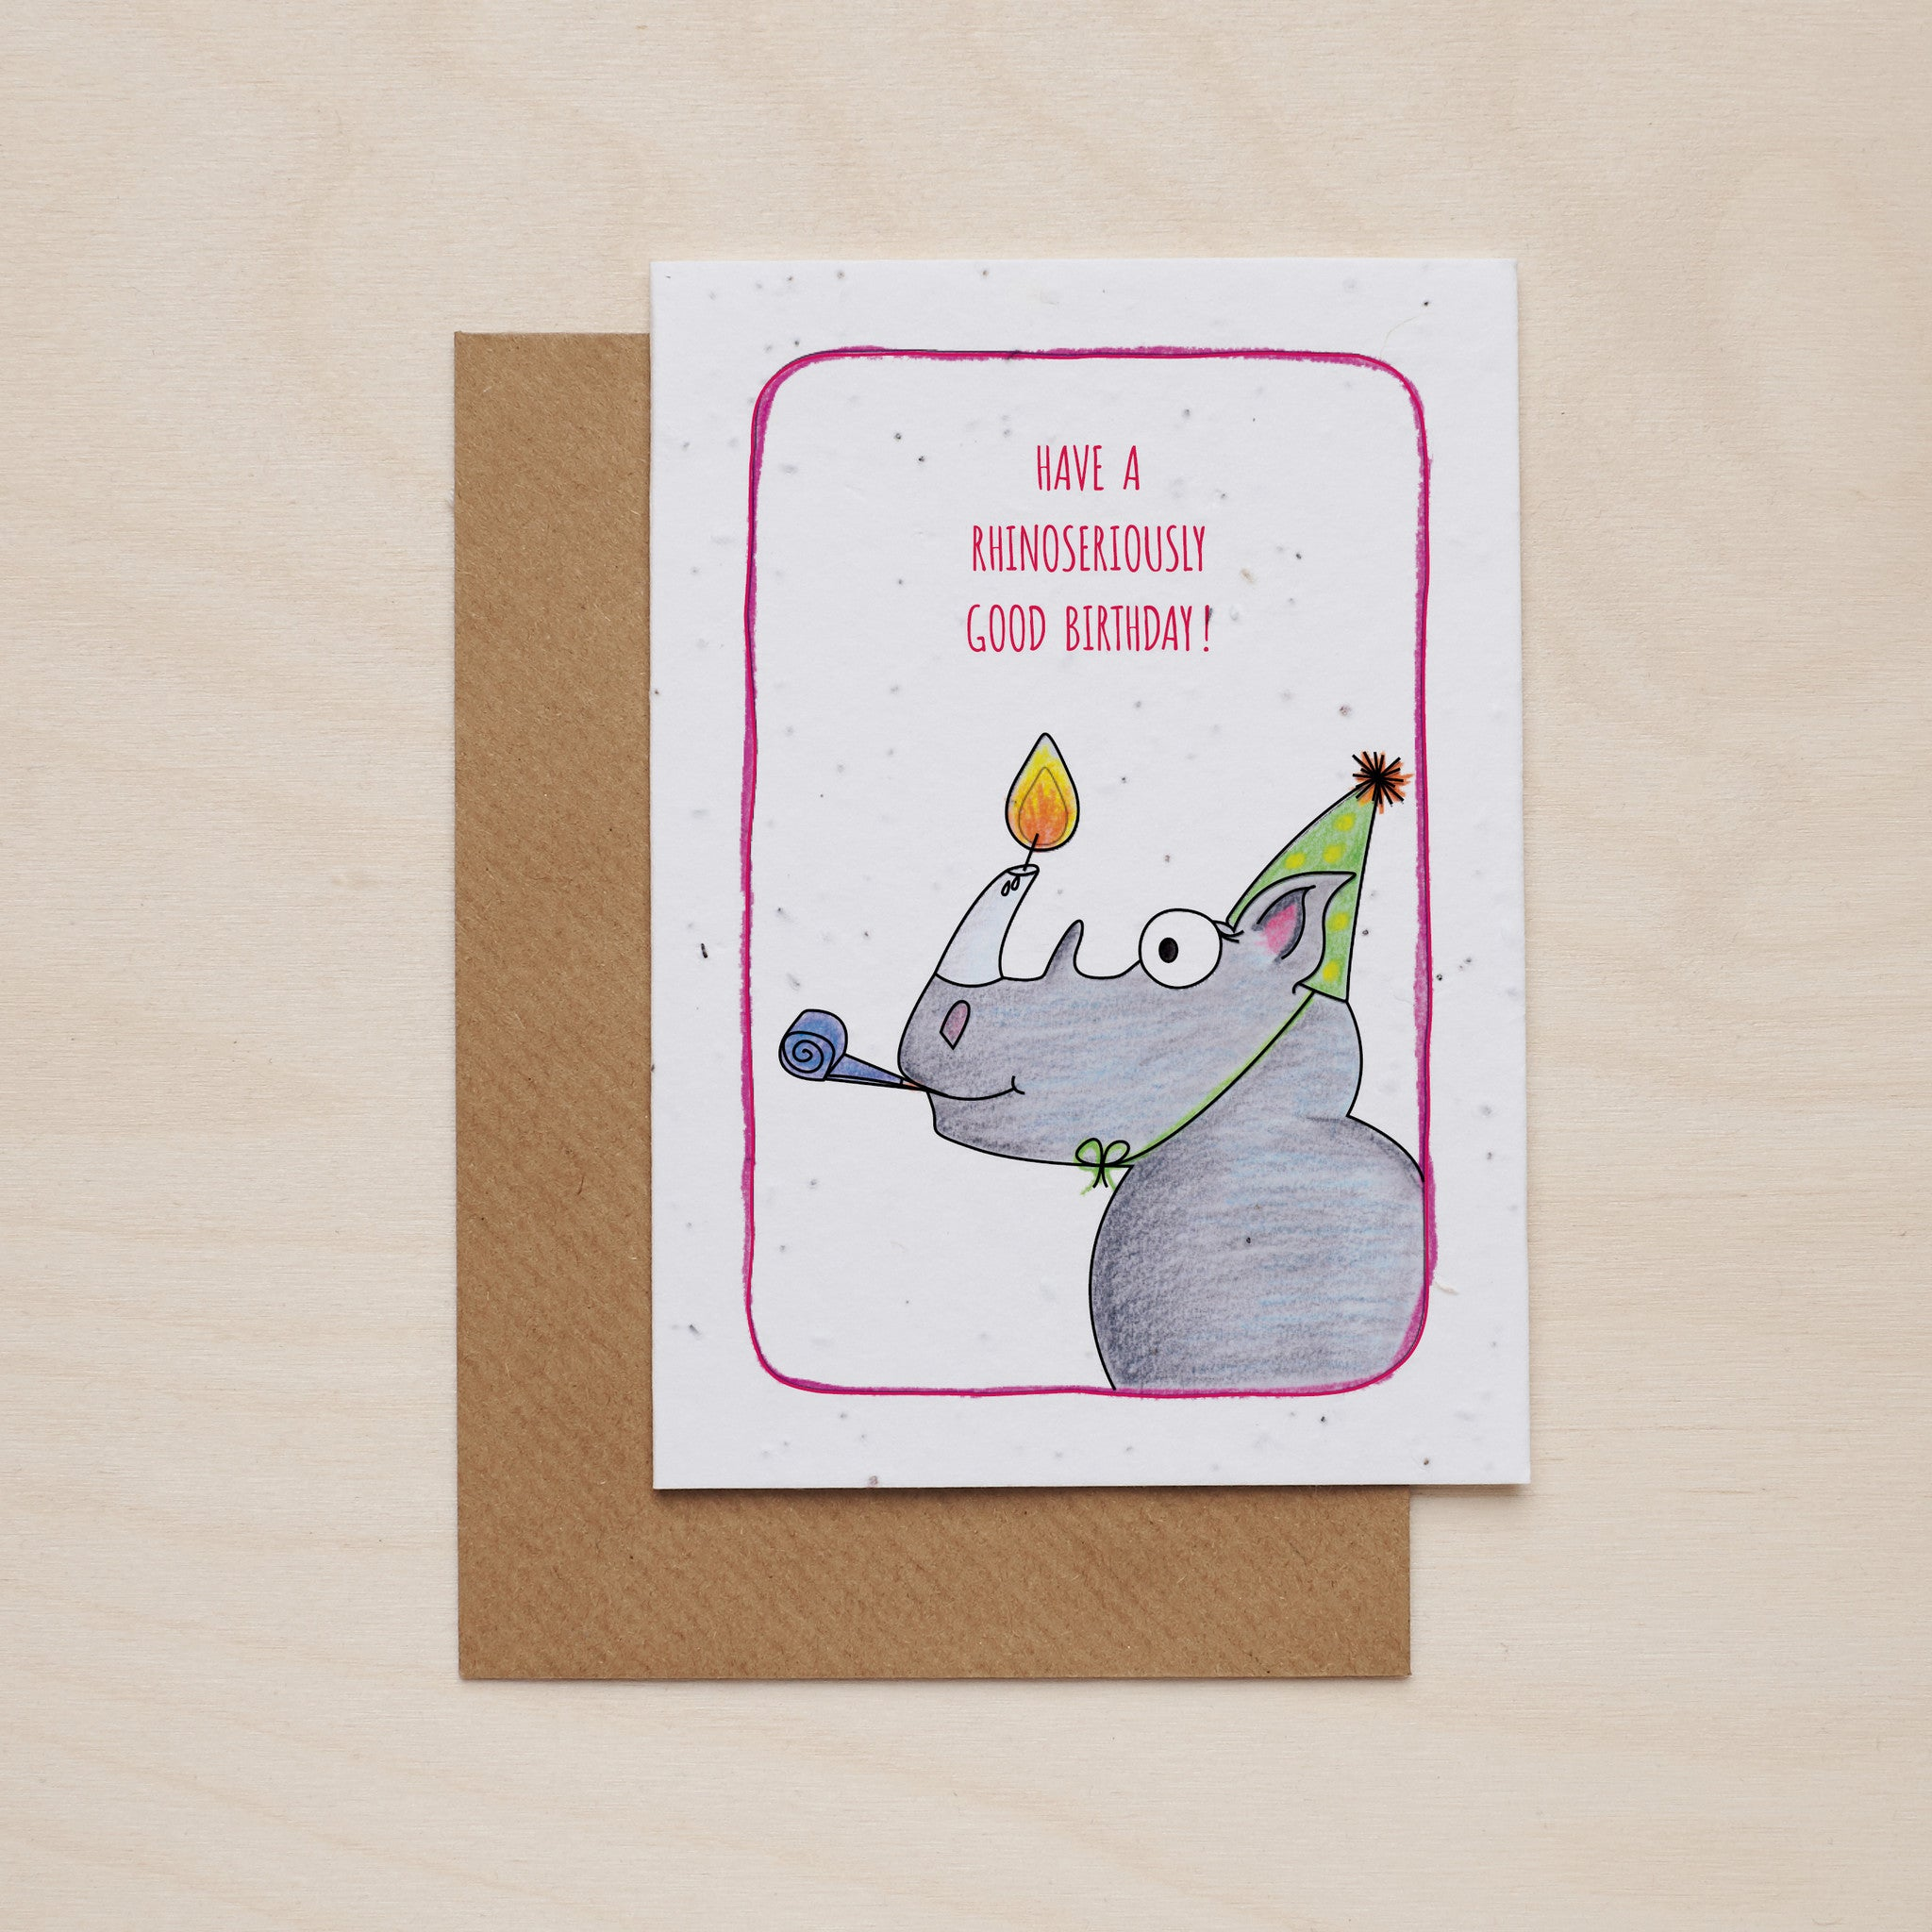 Rhinoseriously good birthday - Seeded card - Oolaladesign